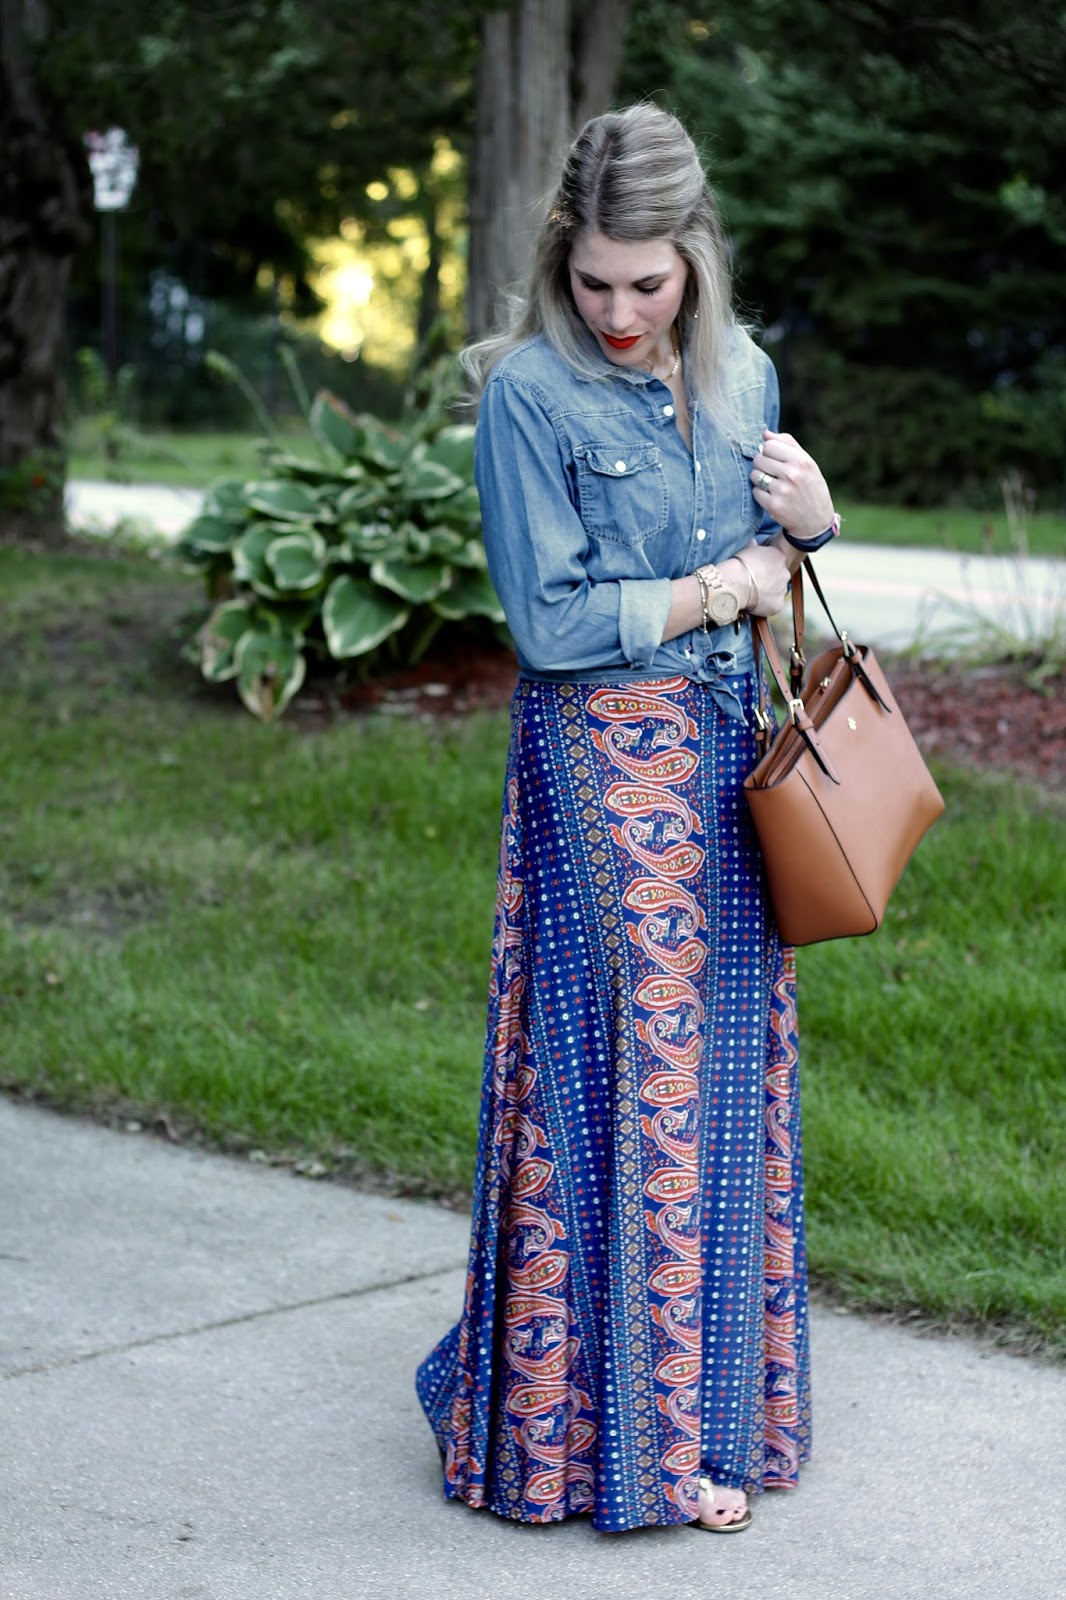 Printed maxi dress with chambray over top, gold sandals, Tory Burch tote